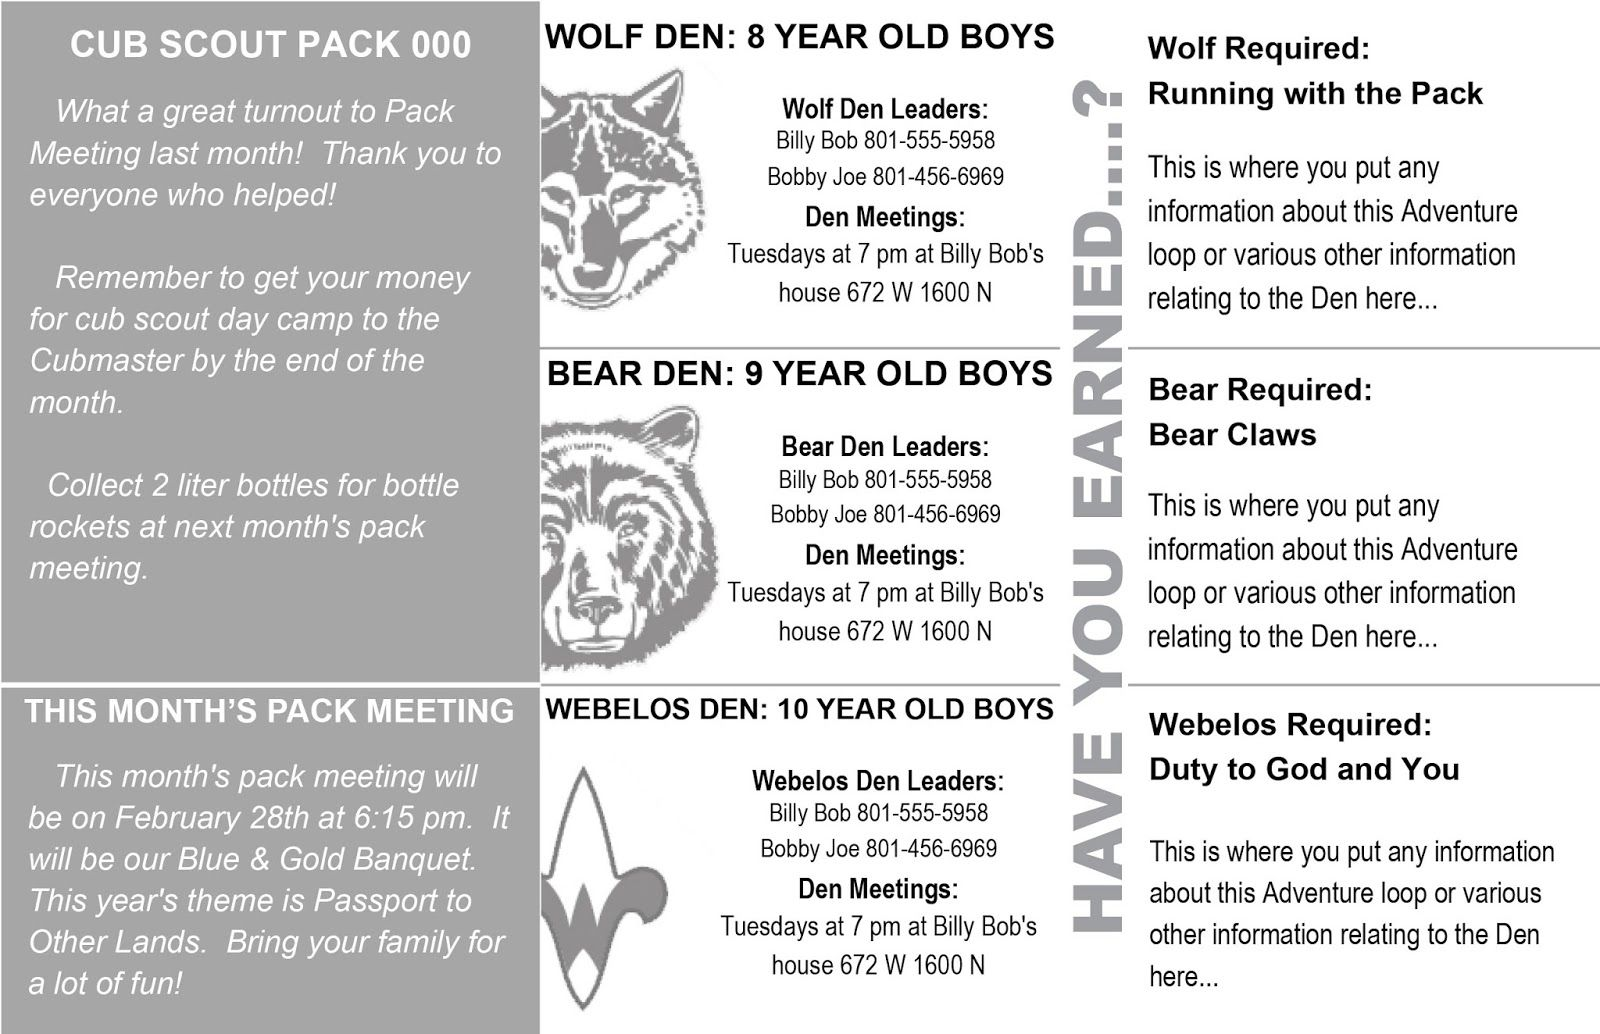 the most basic form of communication is through a paper newsletter our ward produces at the beginning of each month.  In our half page newsletter submission, we include general information about past and future Pack Meetings, as well as reminder information about any other upcoming events.